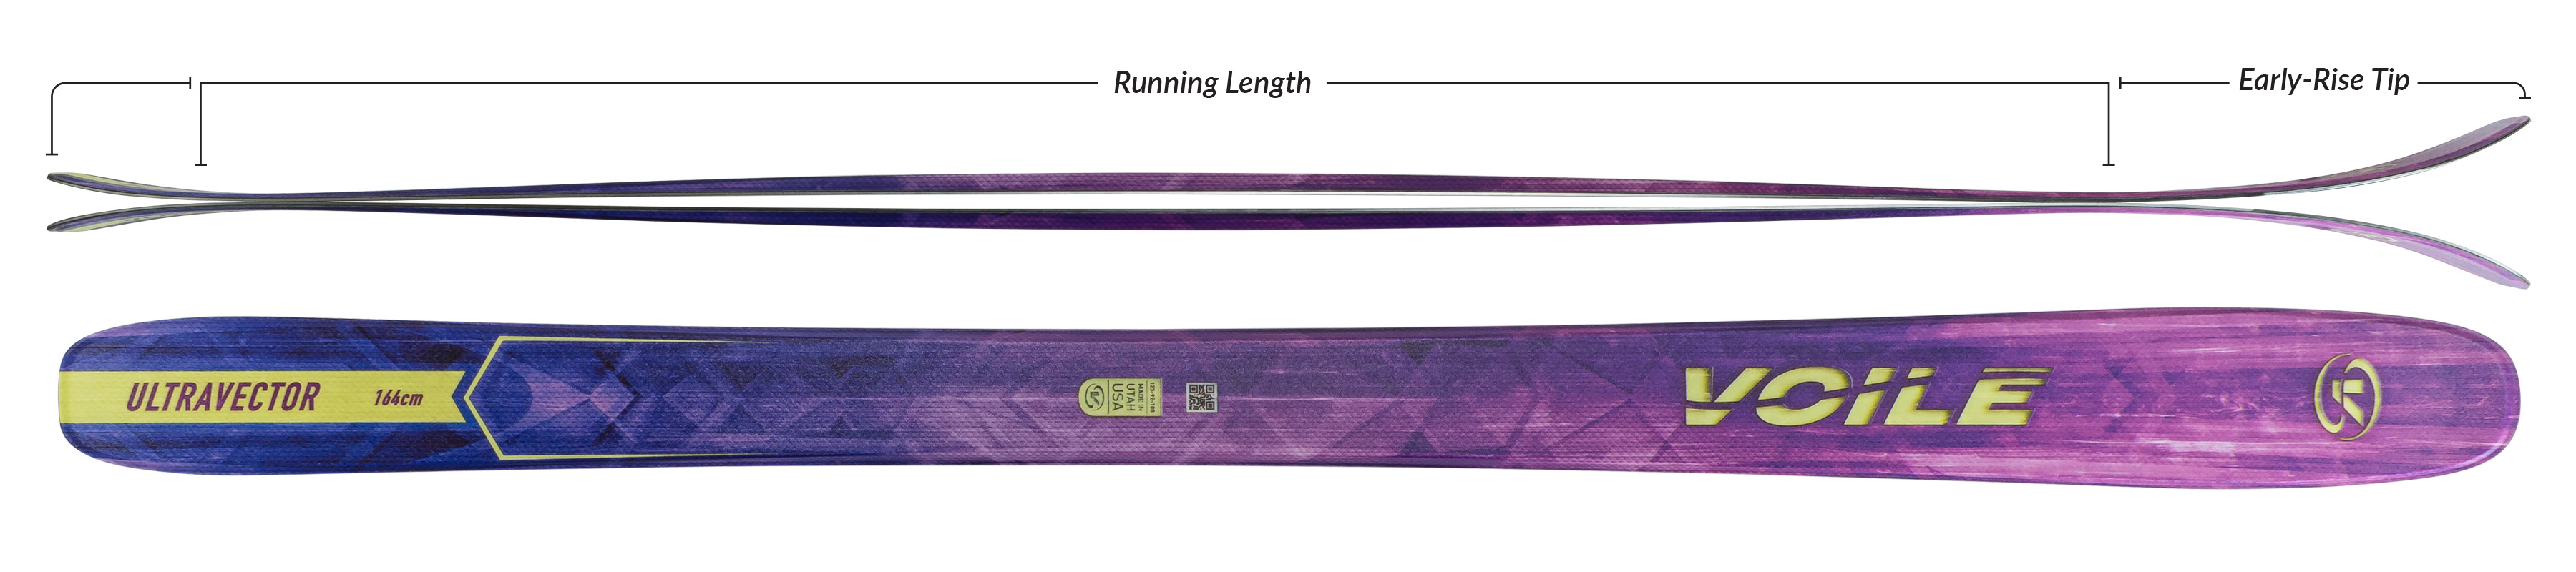 Voile Women's UltraVector Skis Camber Profile